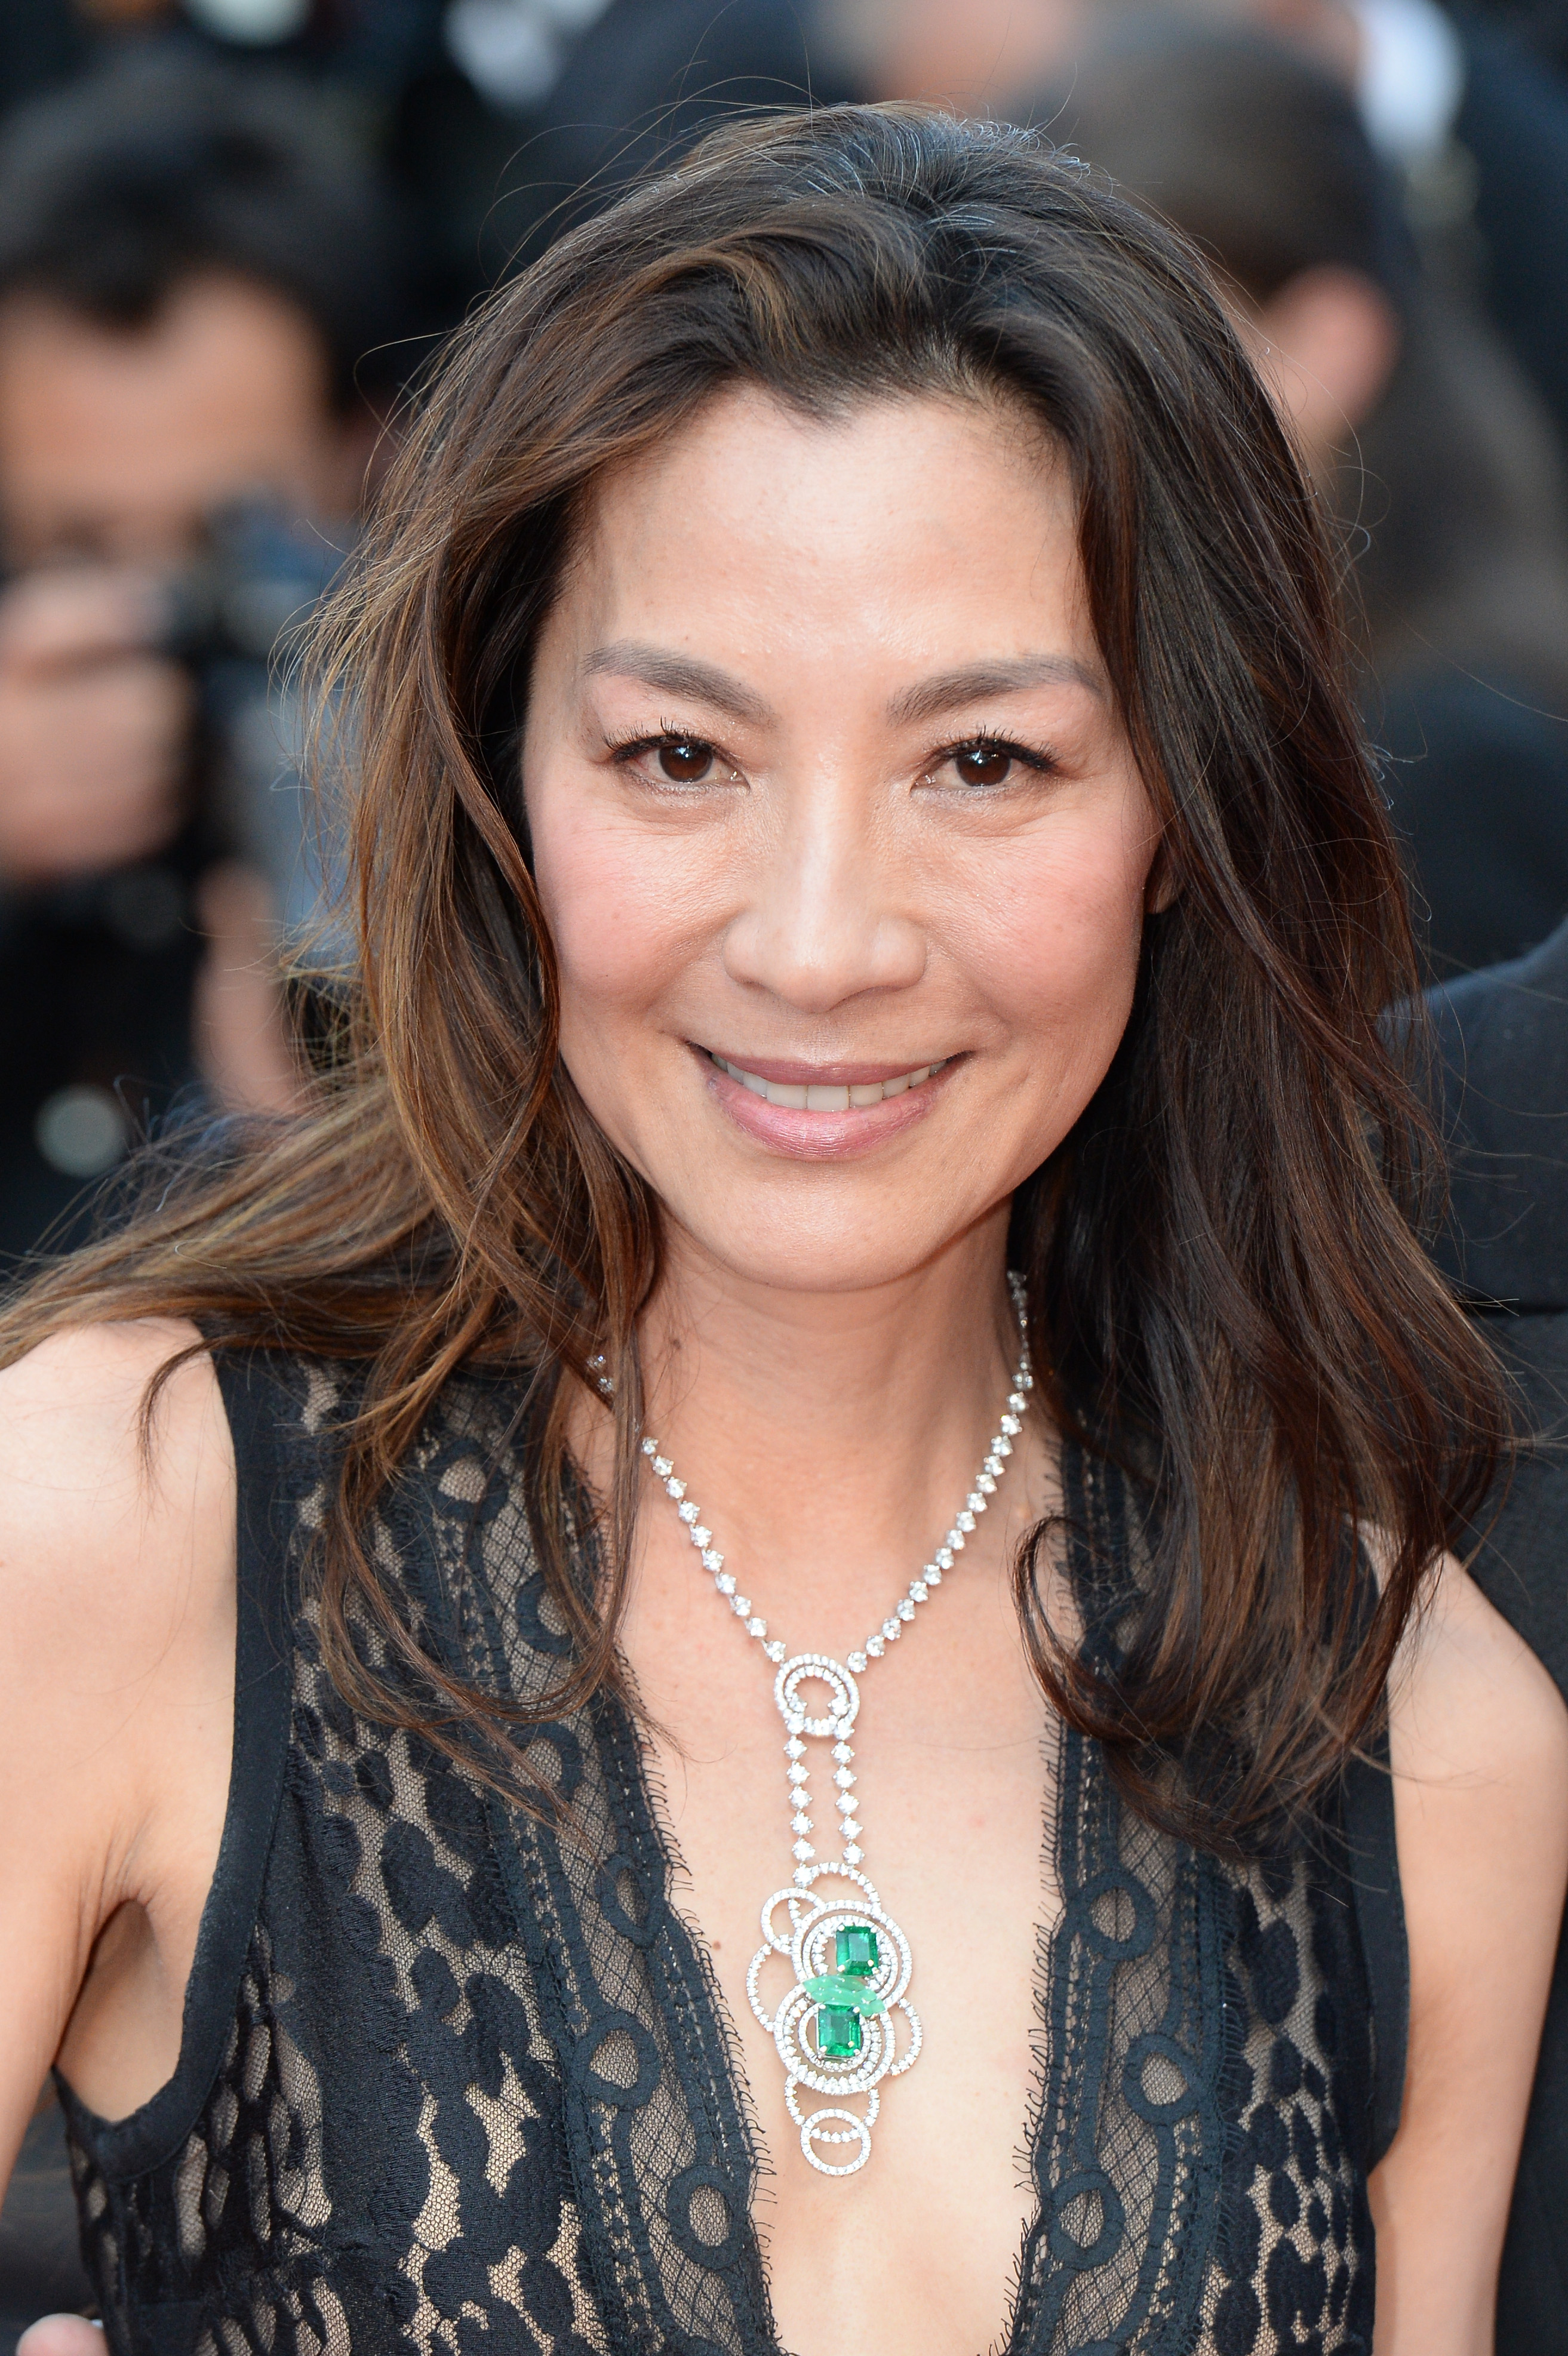 """CANNES, FRANCE - MAY 17: Michelle Yeoh attends the """"Julieta"""" premiere during the 69th annual Cannes Film Festival at the Palais des Festivals on May 17, 2016 in Cannes, France. (Photo by Stephane Cardinale - Corbis/Corbis via Getty Images)"""